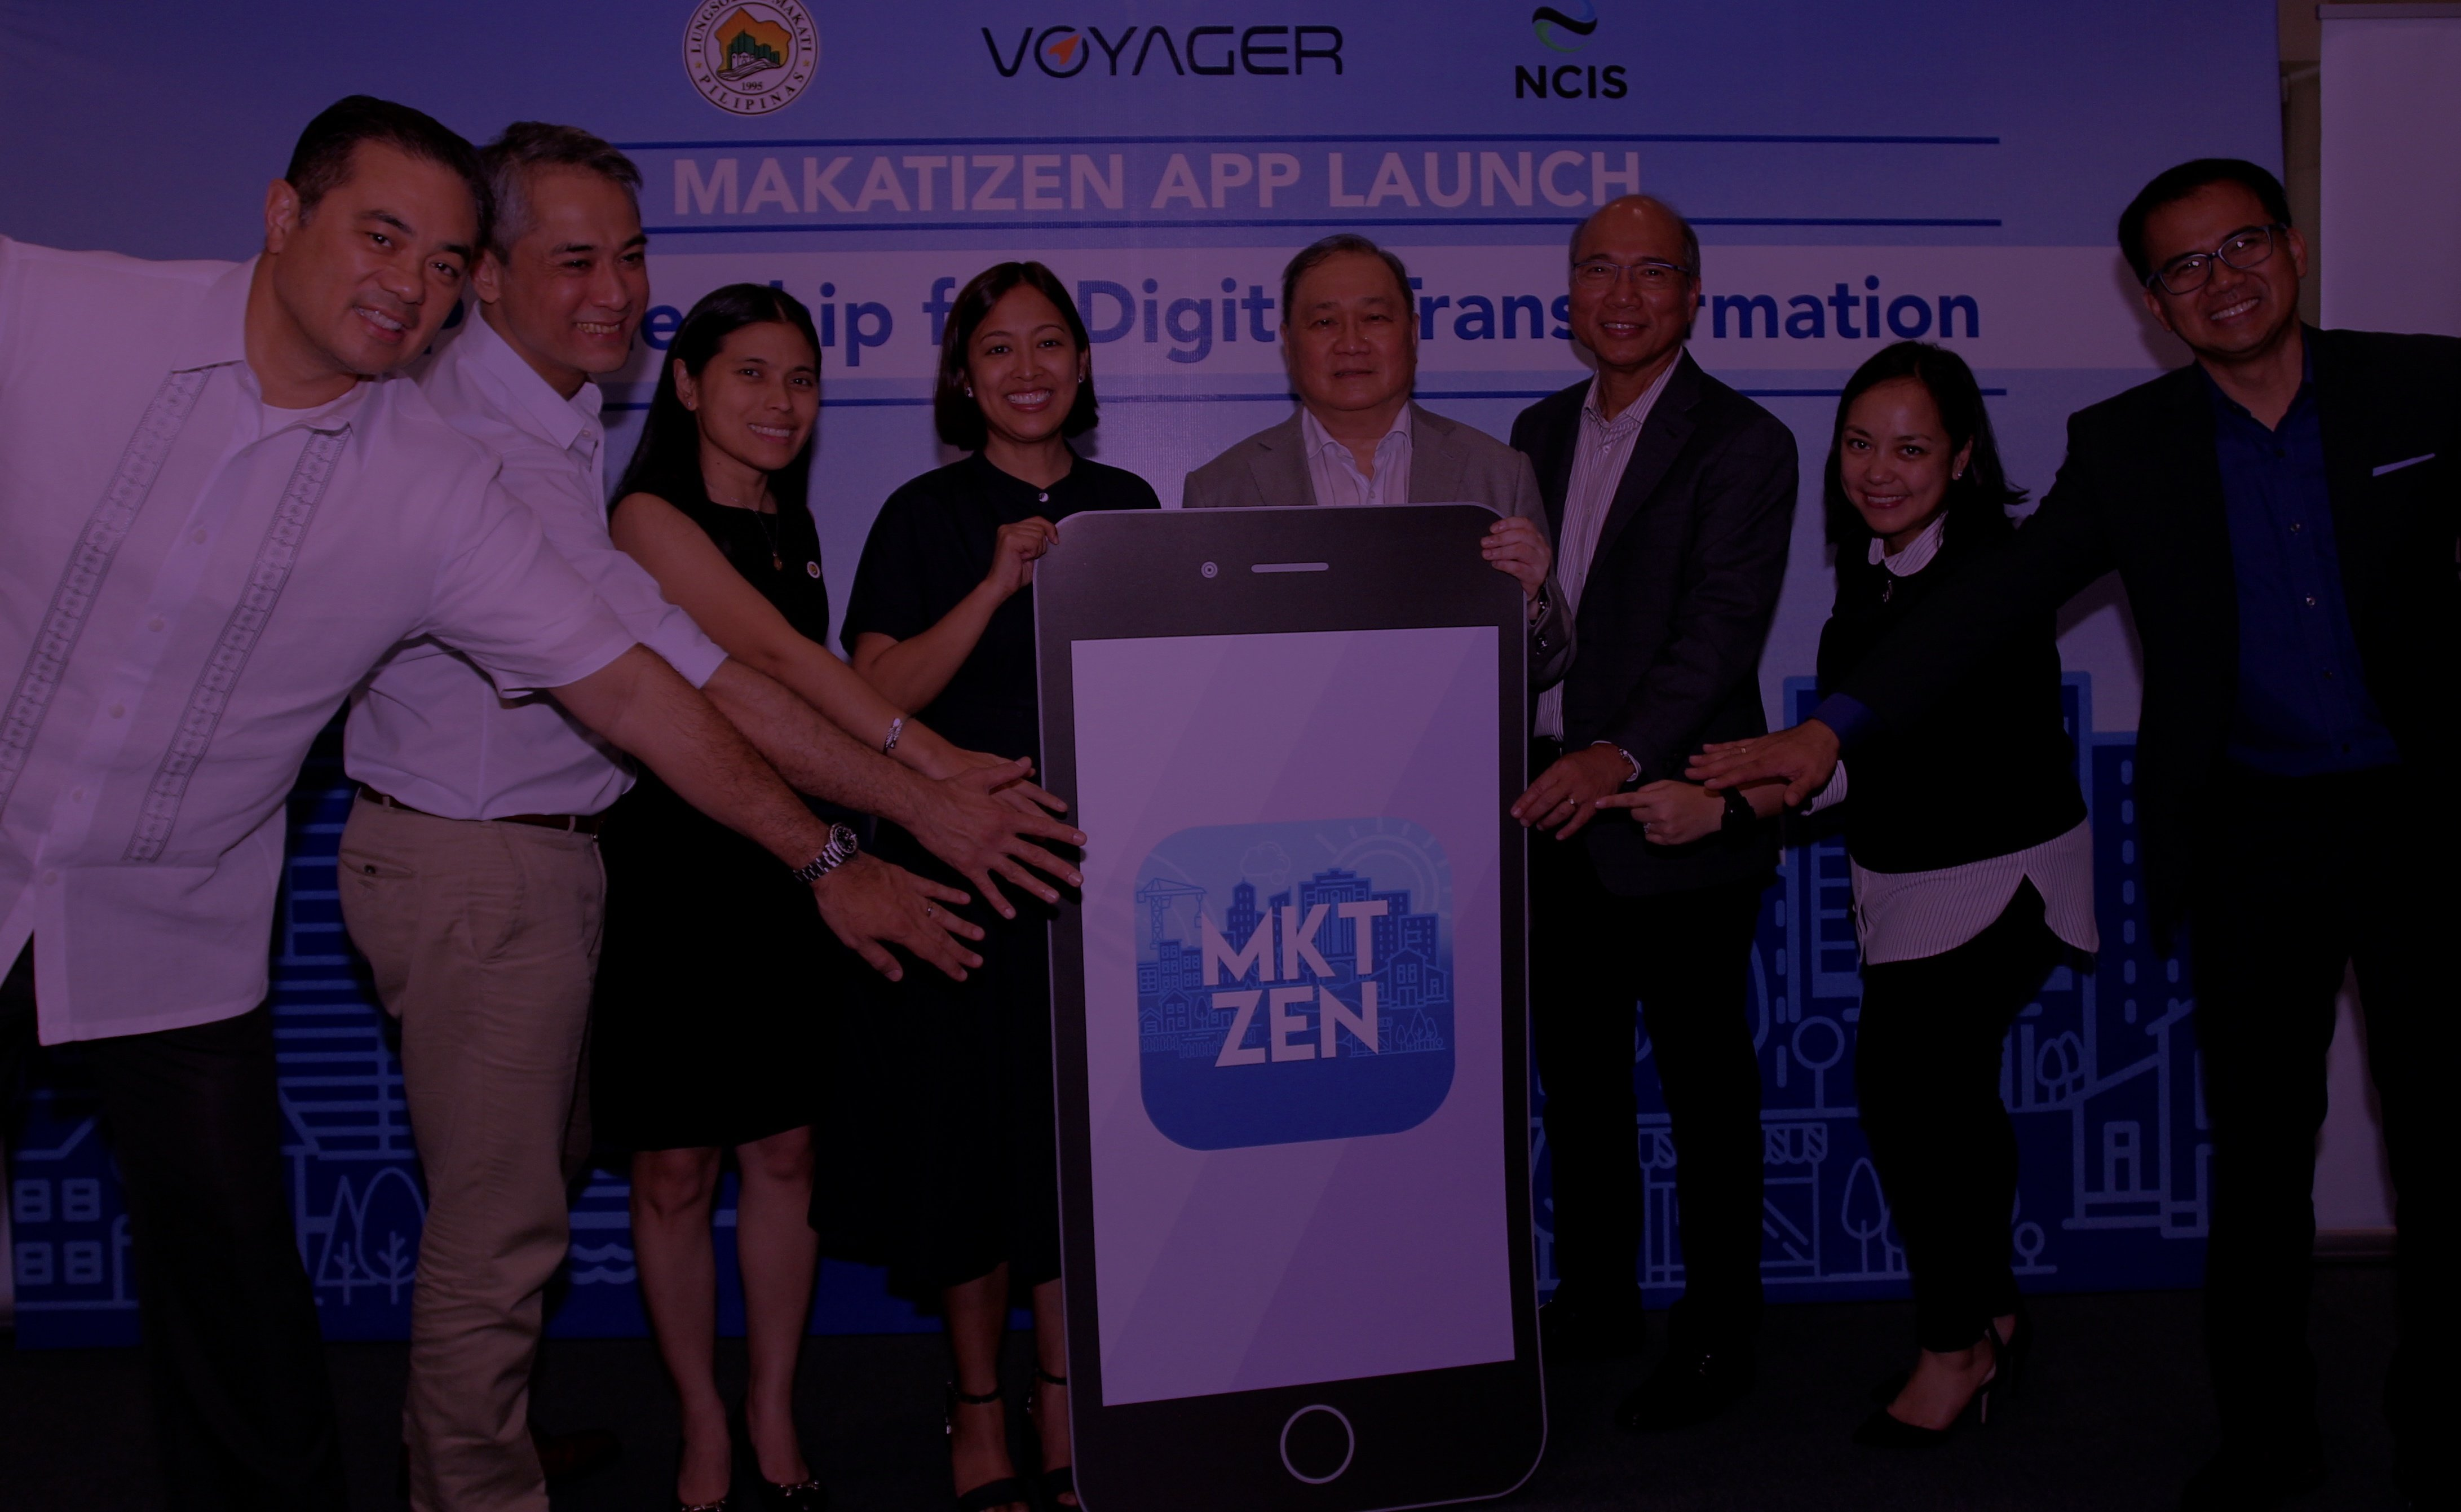 Makatizen App Launch (2).jpg